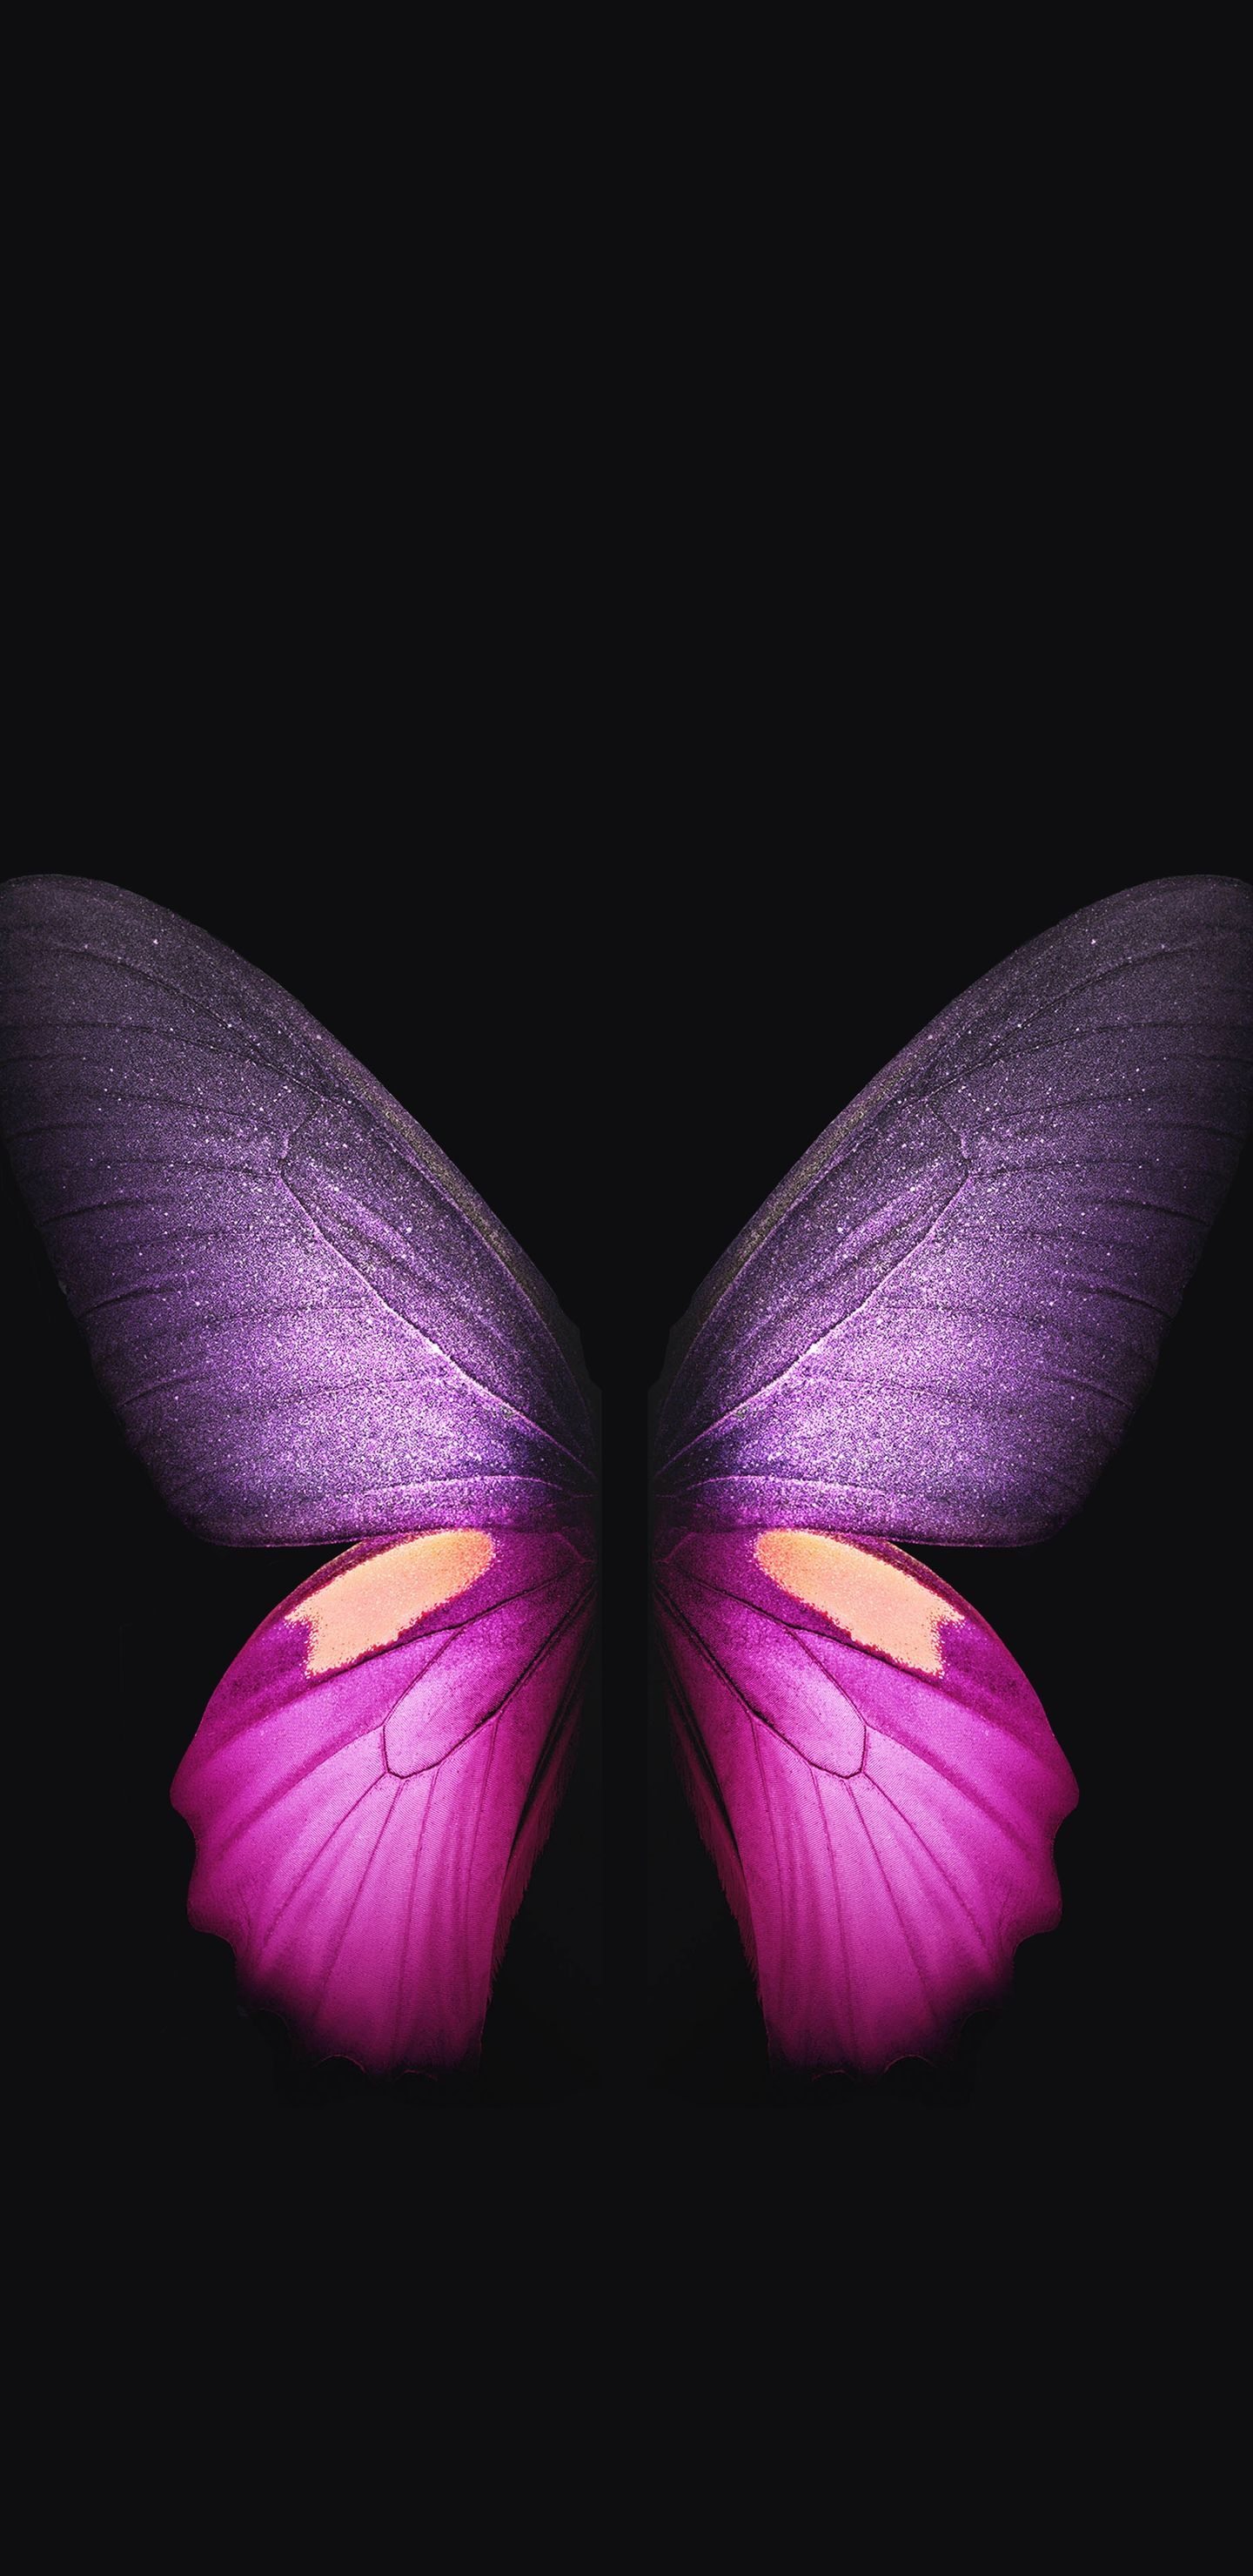 Download Samsung Galaxy Fold Wallpapers [QHD+] (Official)